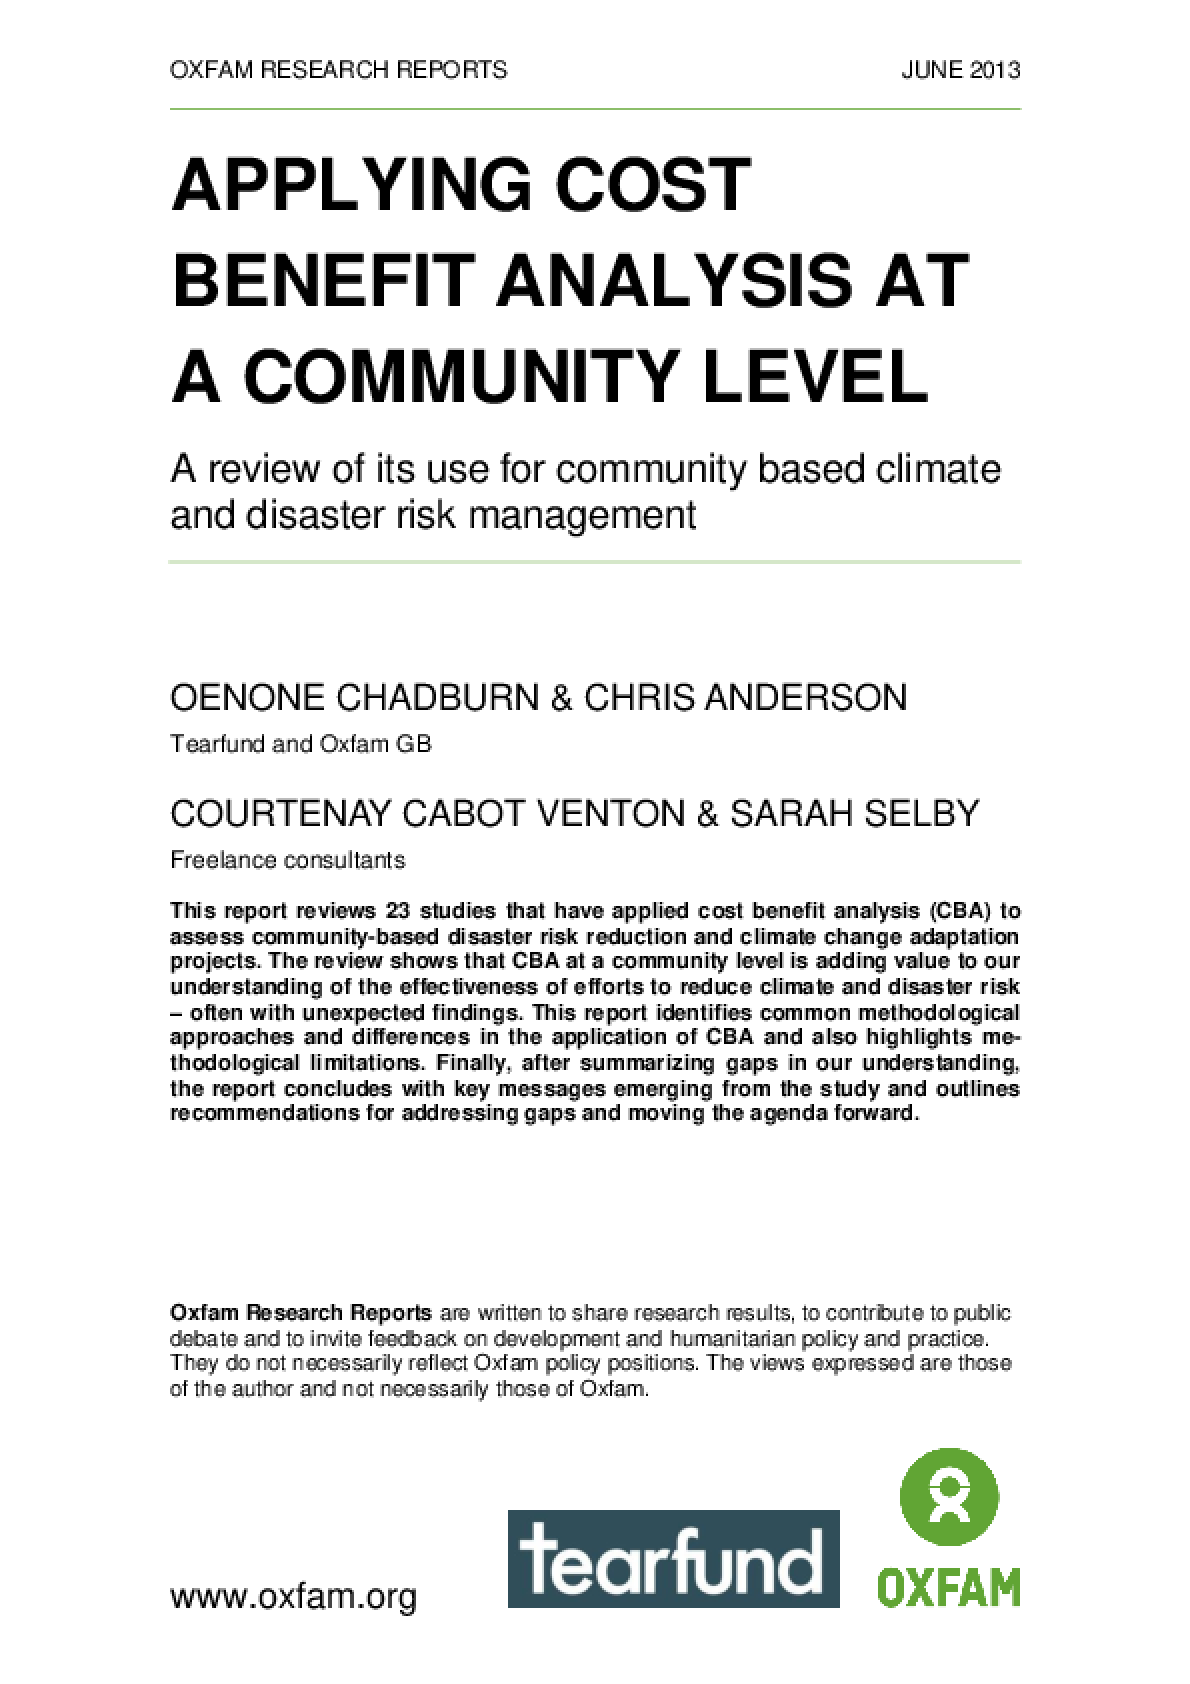 Applying Cost Benefit Analysis at a Community Level: A review of its use for community based climate and disaster risk management